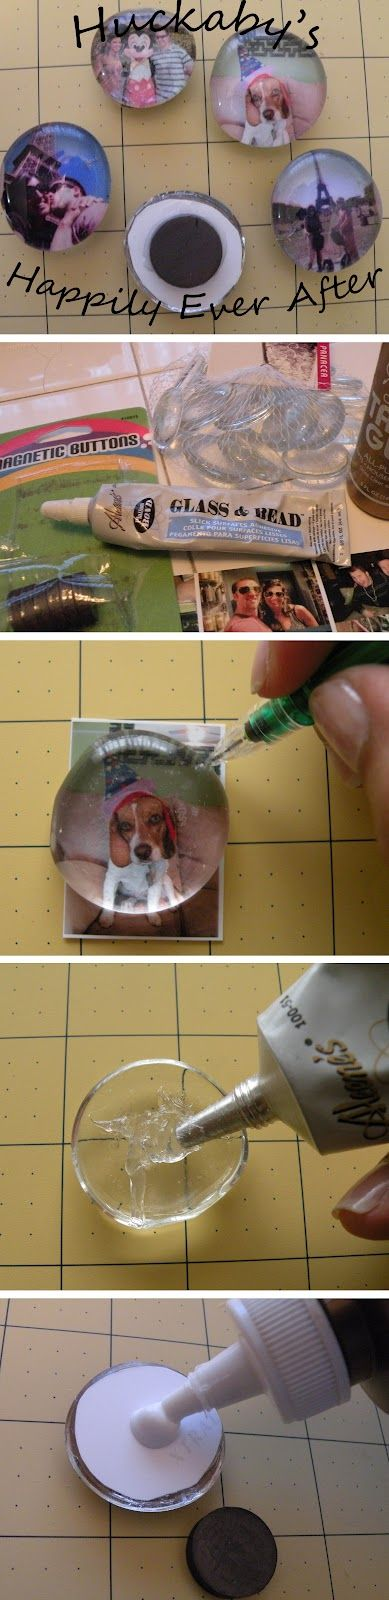 DIY magnets: Diy Picture Magnet, Affordable Christmas Gift, Magnet Craft, Diy Craft, Diy Photo Magnet